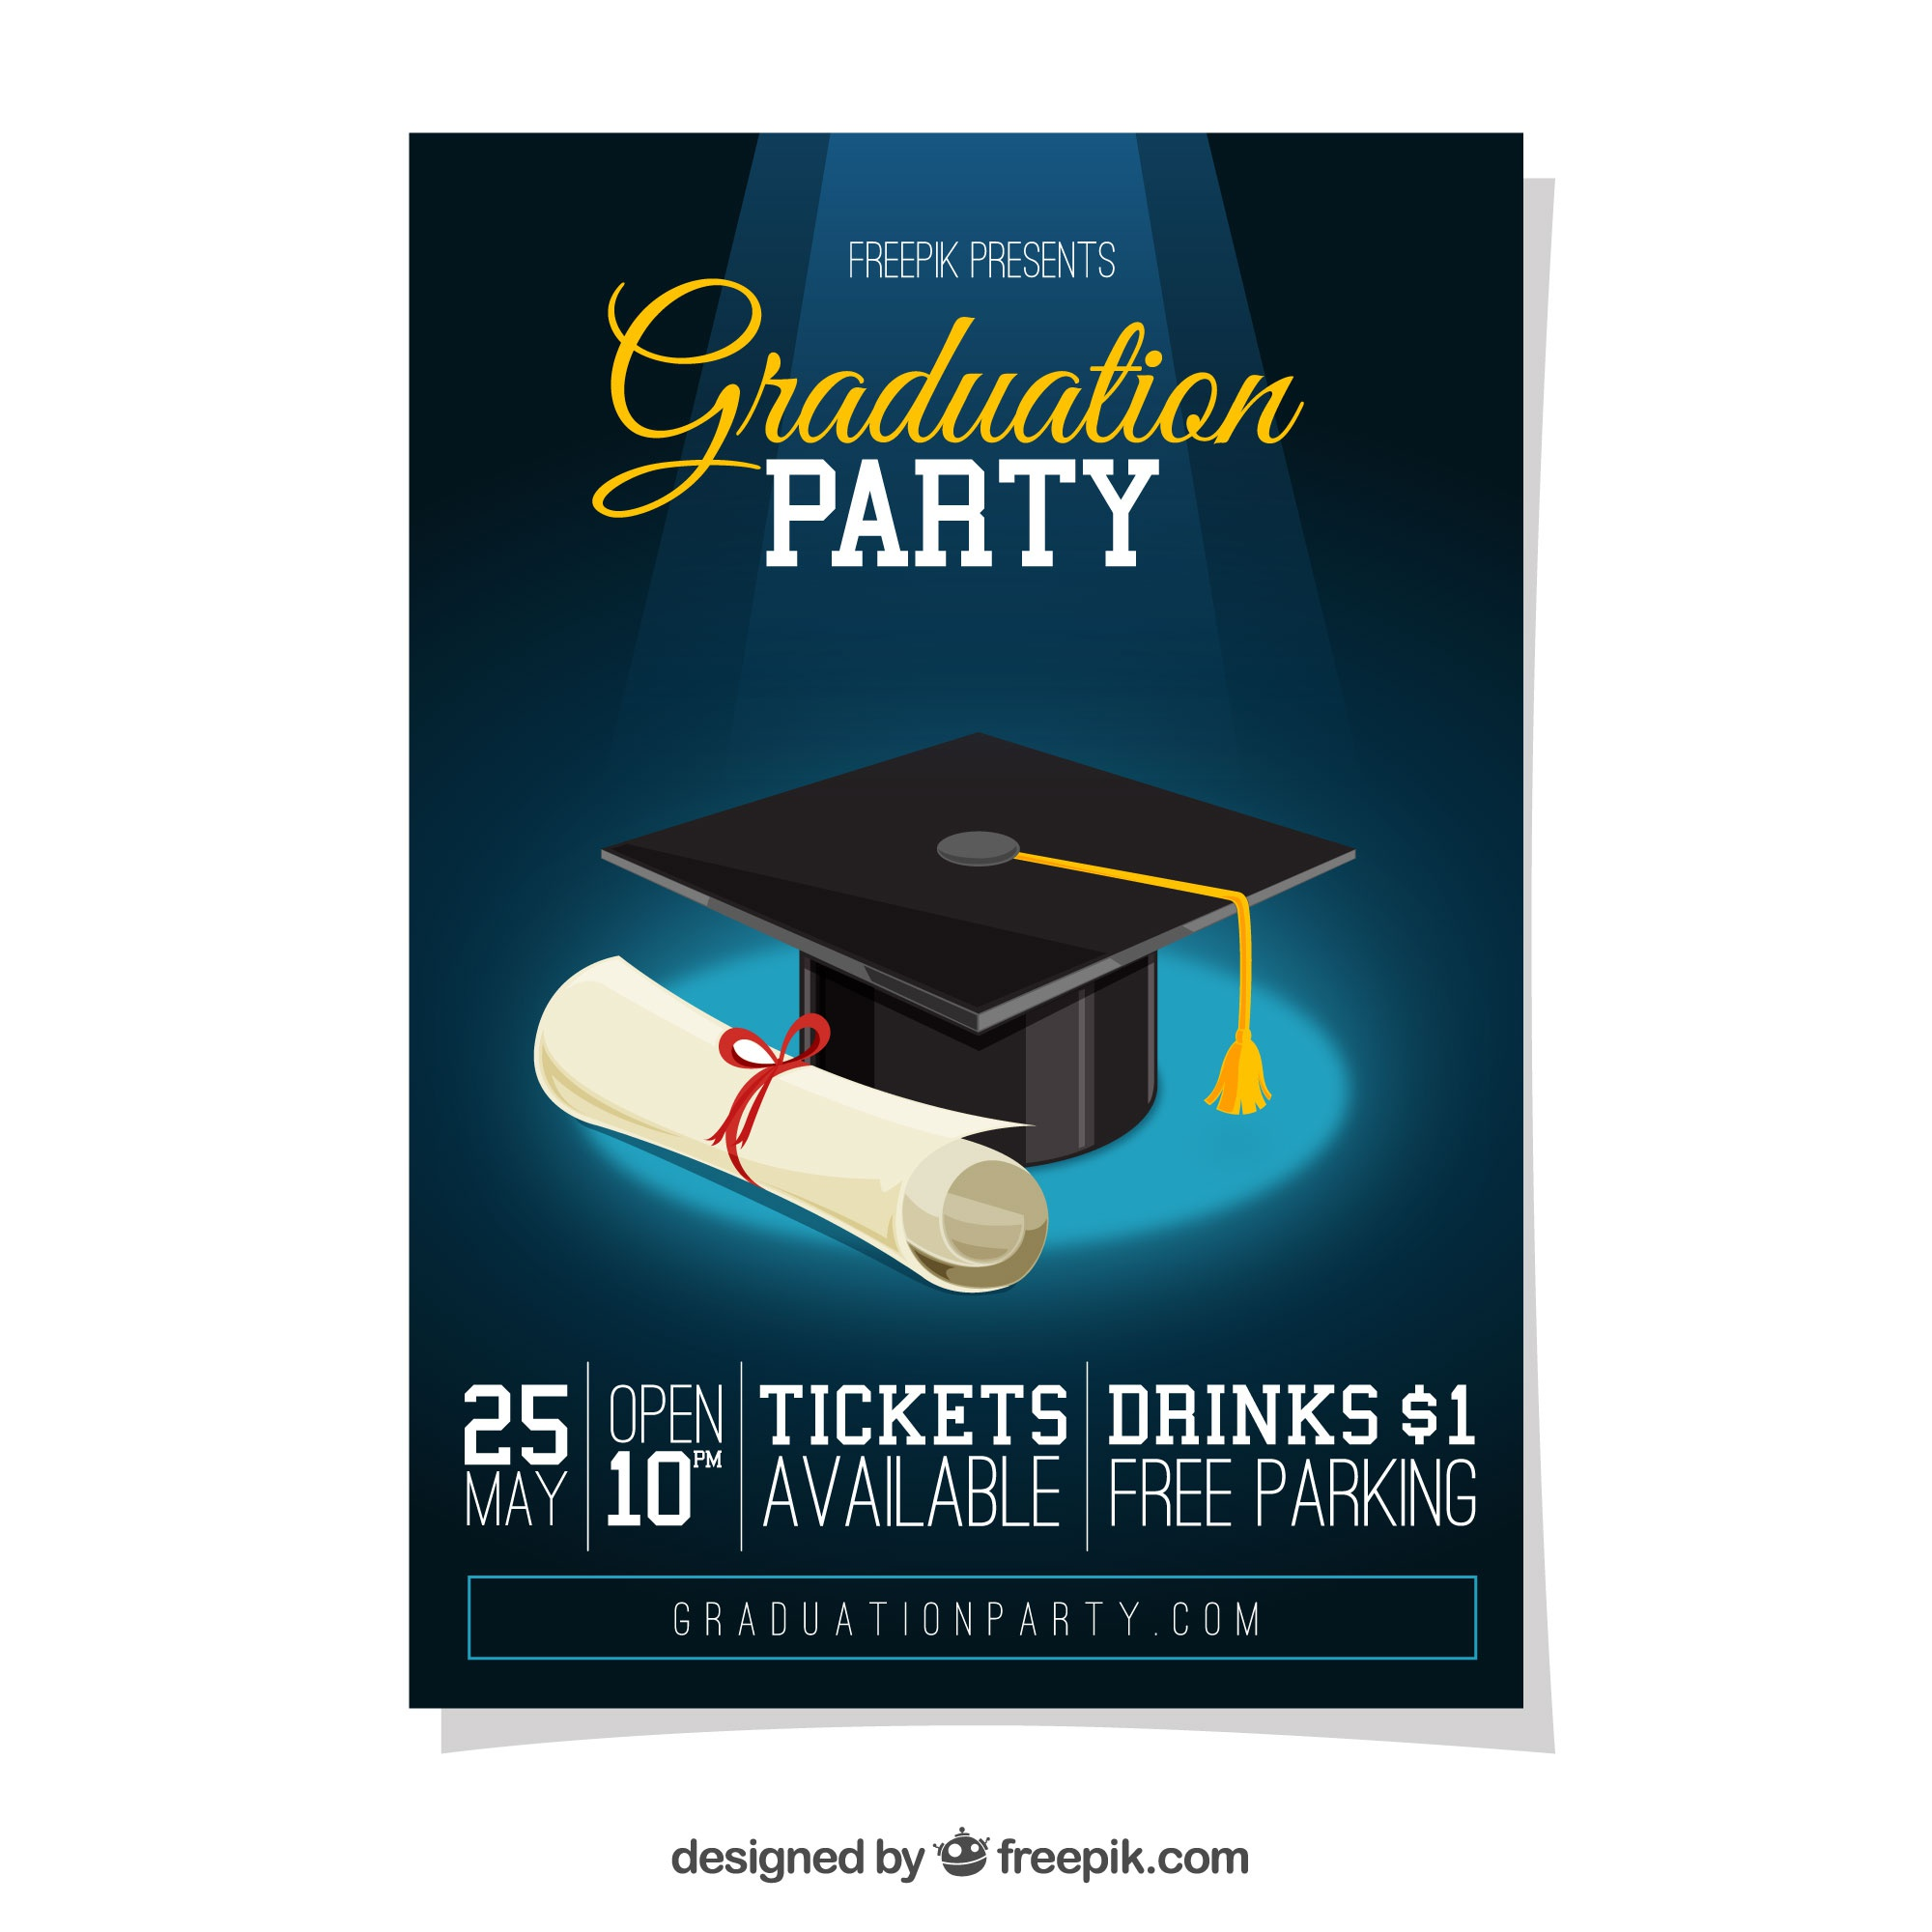 Graduation party poster with diploma and graduation cap